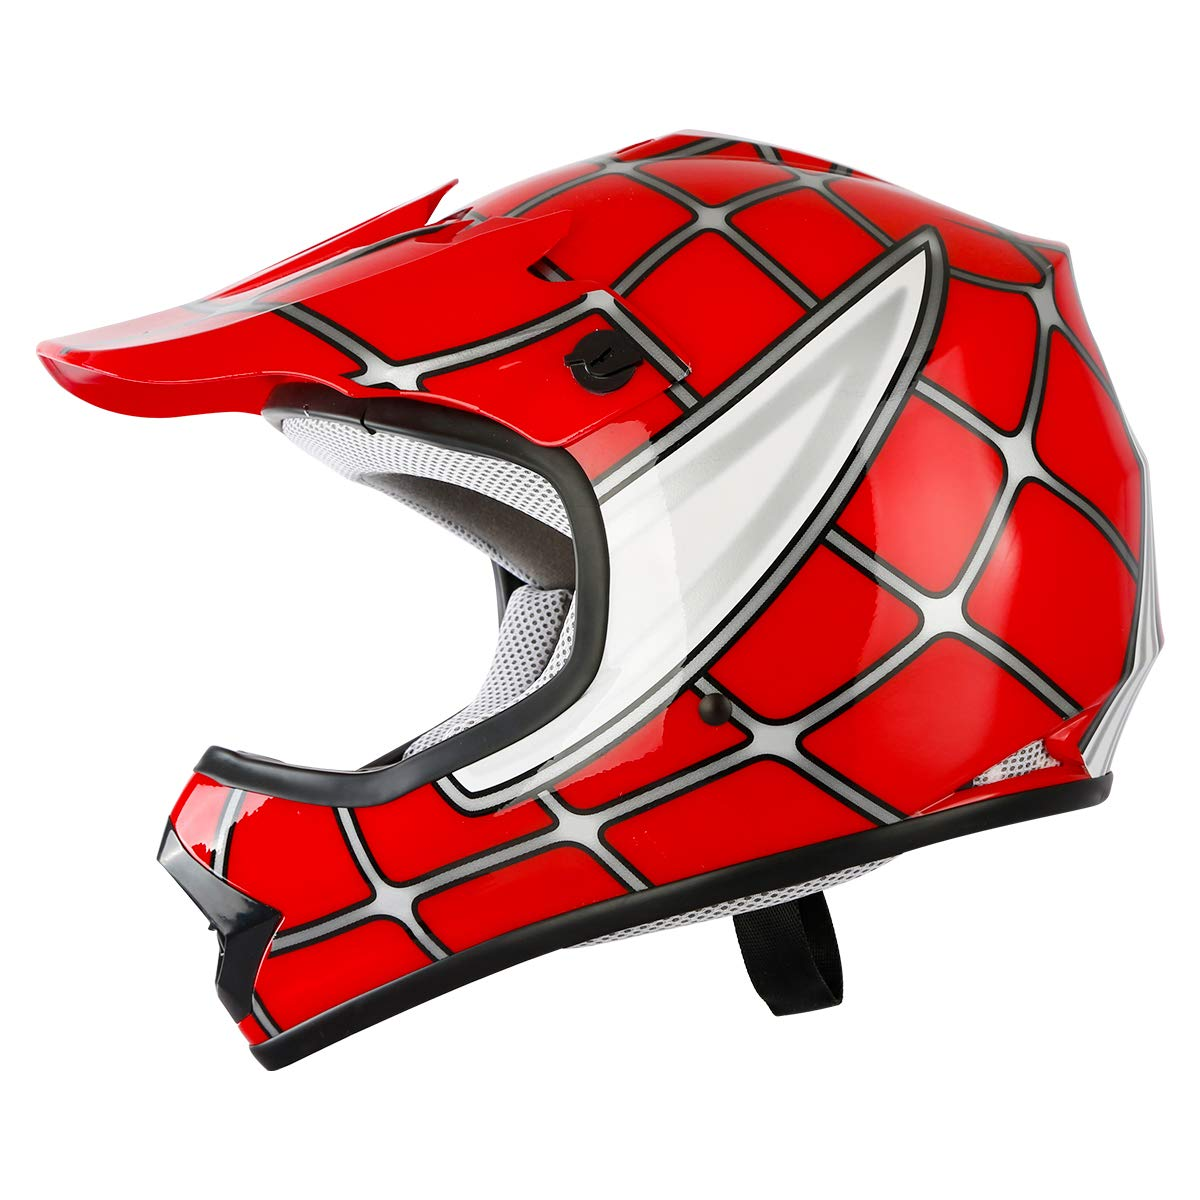 S TCT-MT Youth Kids Helmets+Goggles+Gloves Red Spider DOT Net Dirt Bike Helmet Motocross ATV MX Helmet w//Gloves+Goggles